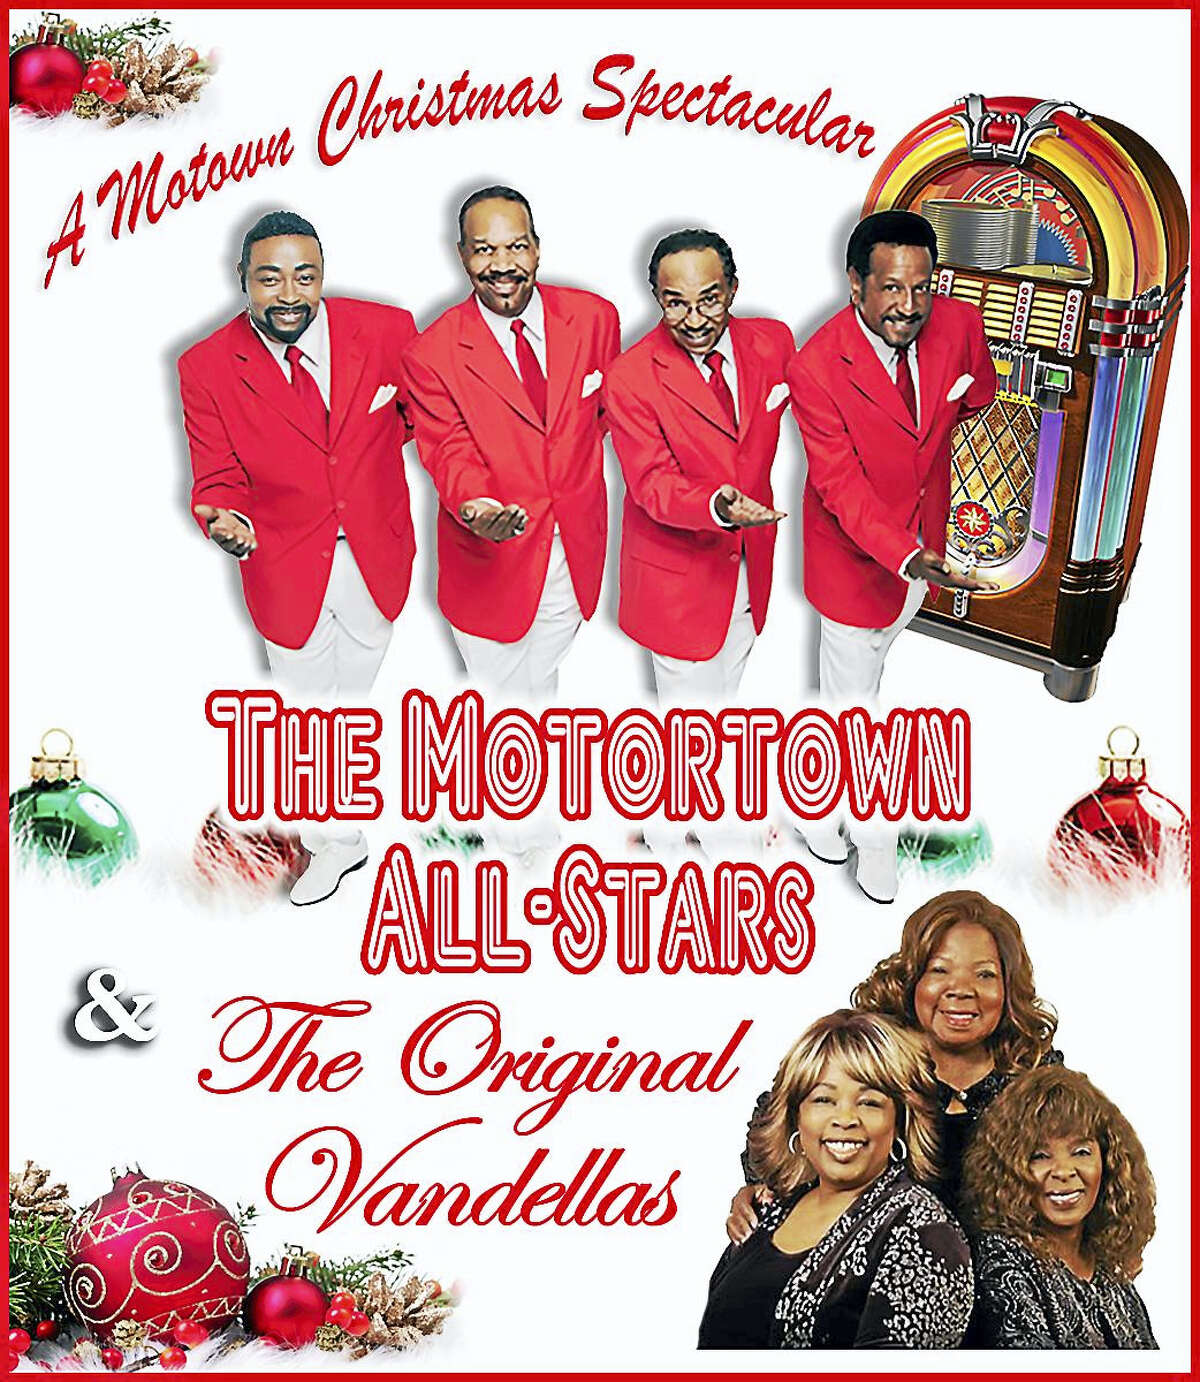 Contributed photo The Motortown All-Stars and the Original Vandellas are presenting a special holiday concert at the Warner Theatre on Saturday, Dec. 17.